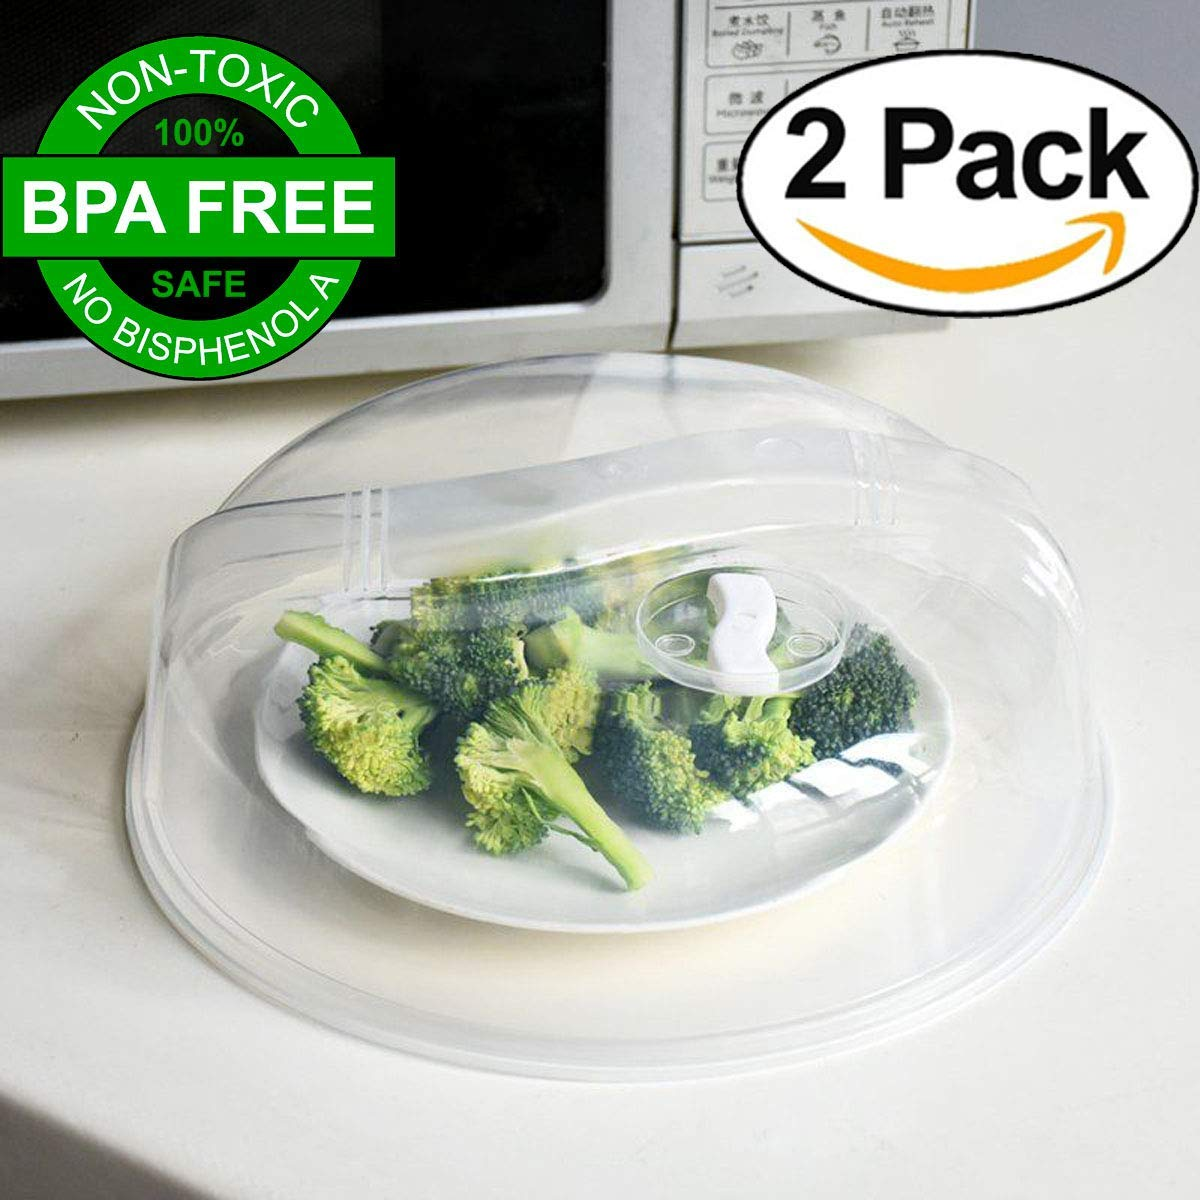 Glass Plate Cover For Microwave Cheap 3pcs Microwave Dish Find 3pcs Microwave Dish Deals On Line